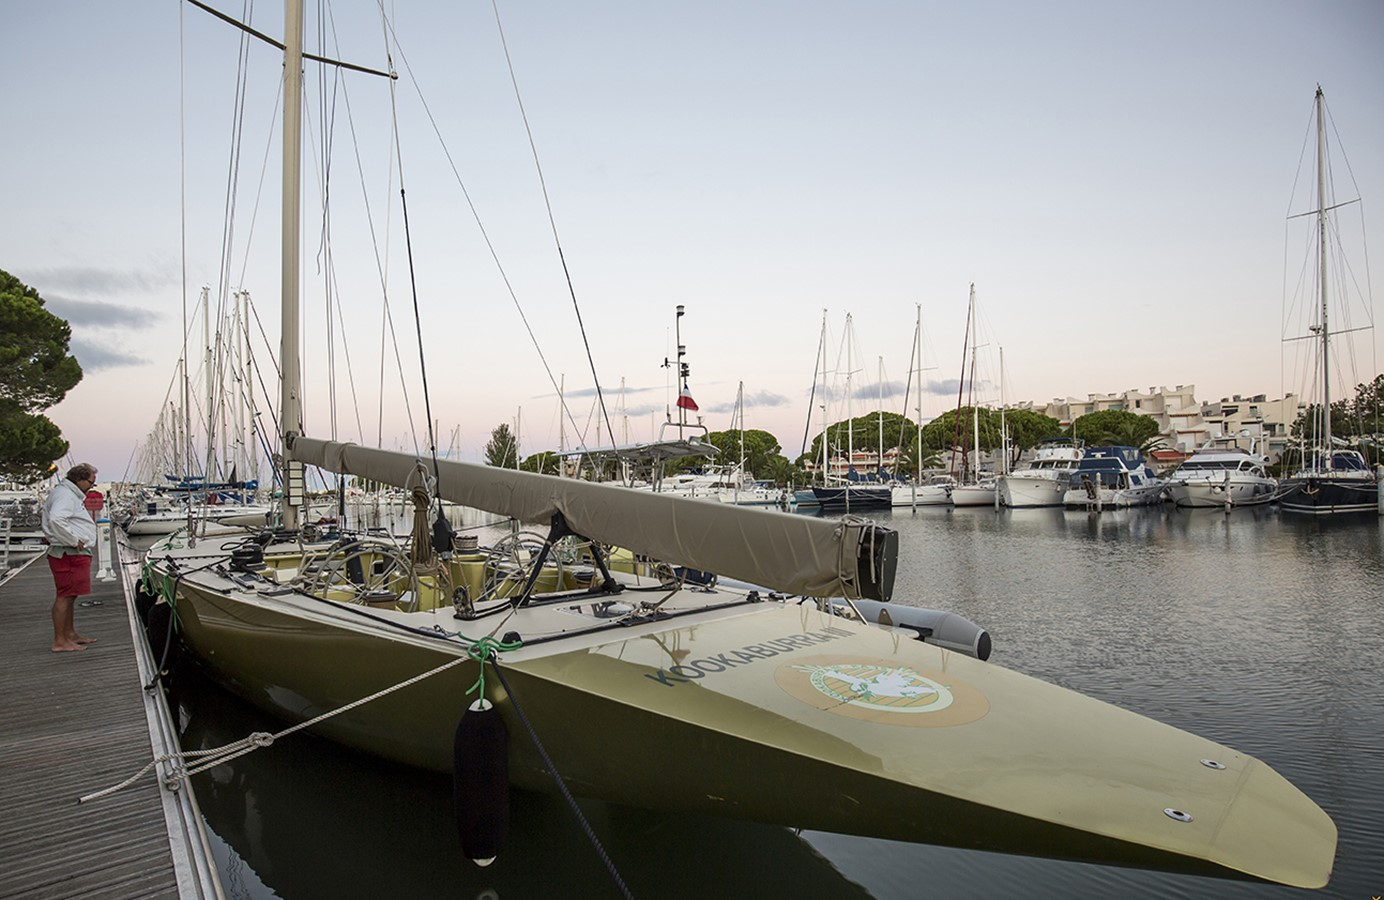 1986 PARRY SYNDICATE 12 Meter Racing Sailboat 2336581